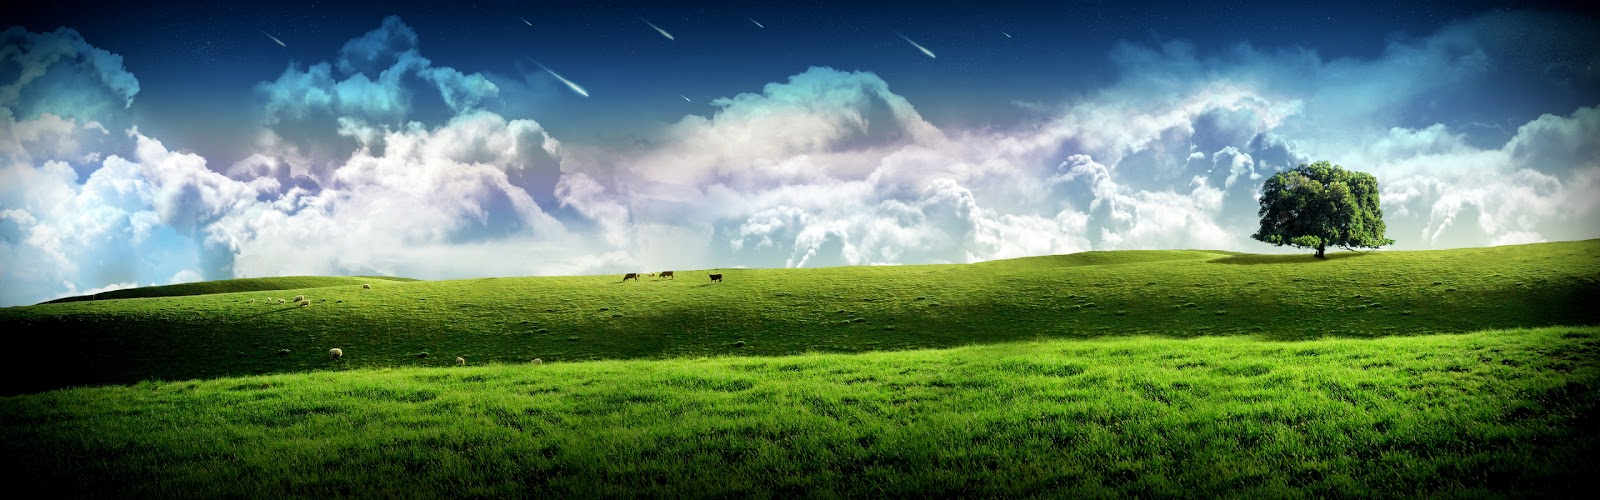 Wallpaper a day dual screen monitor extended countryside windows 1600x500